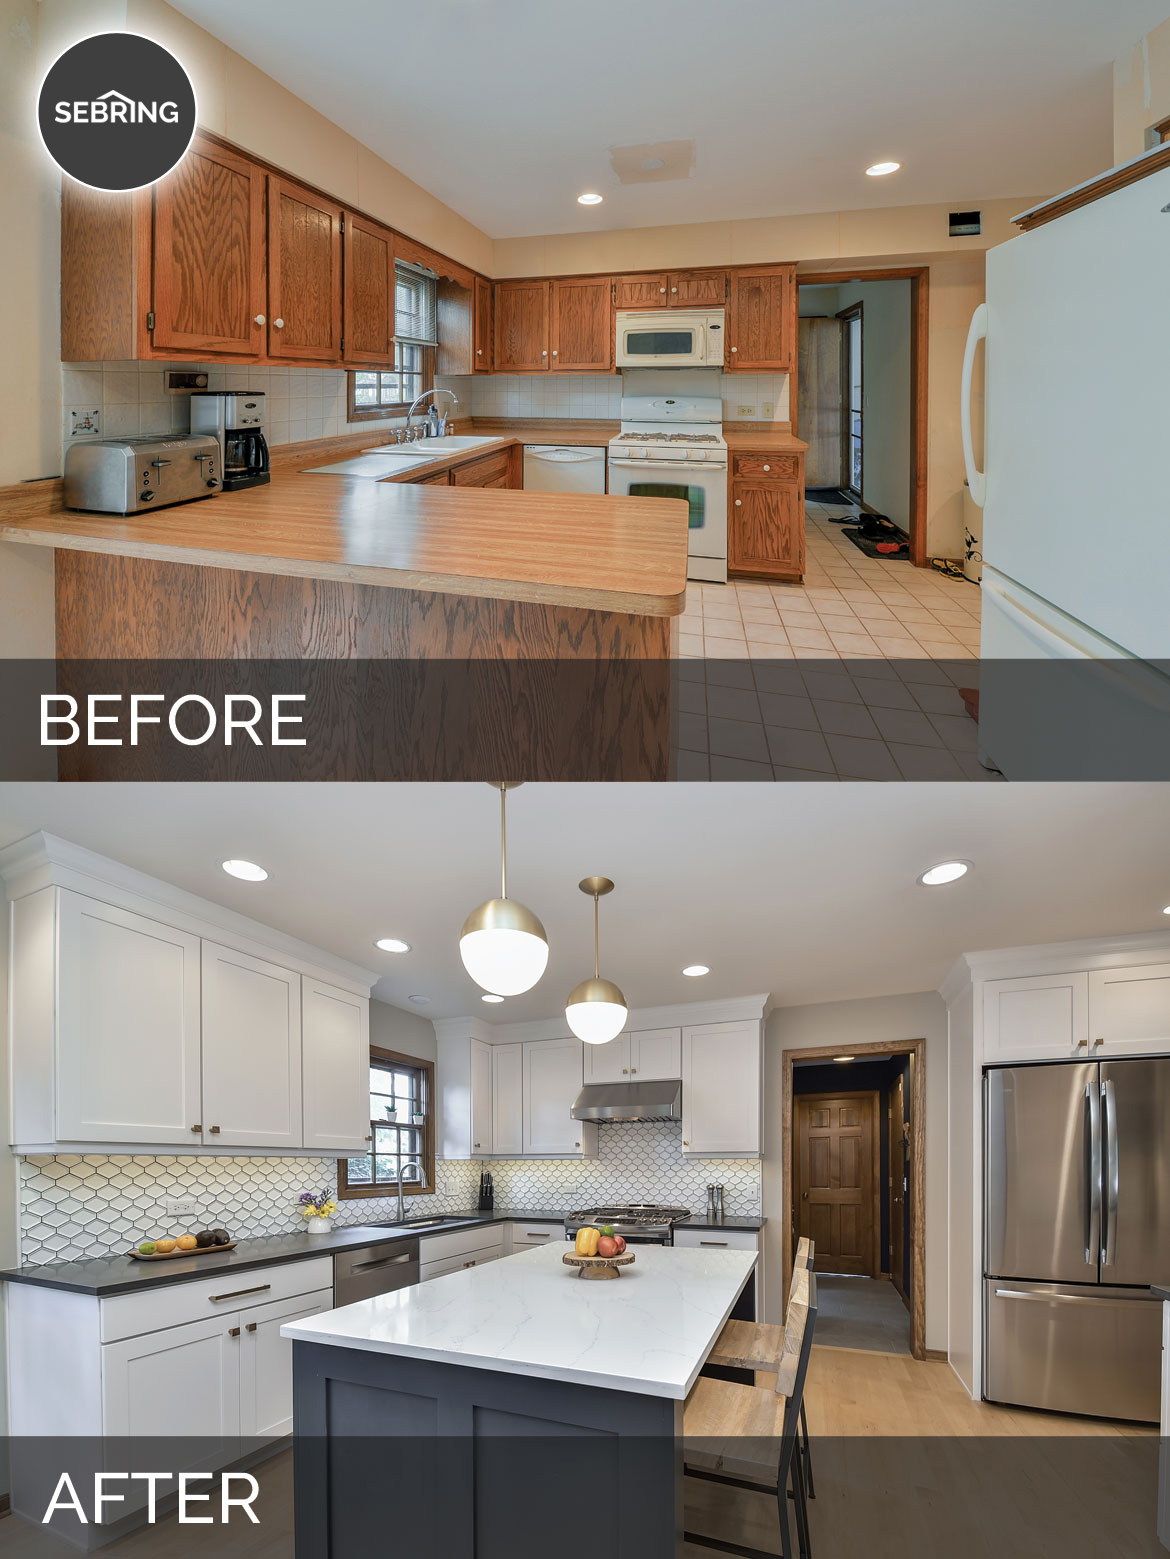 Justin carina s kitchen before after pictures home for Renovating kitchen units